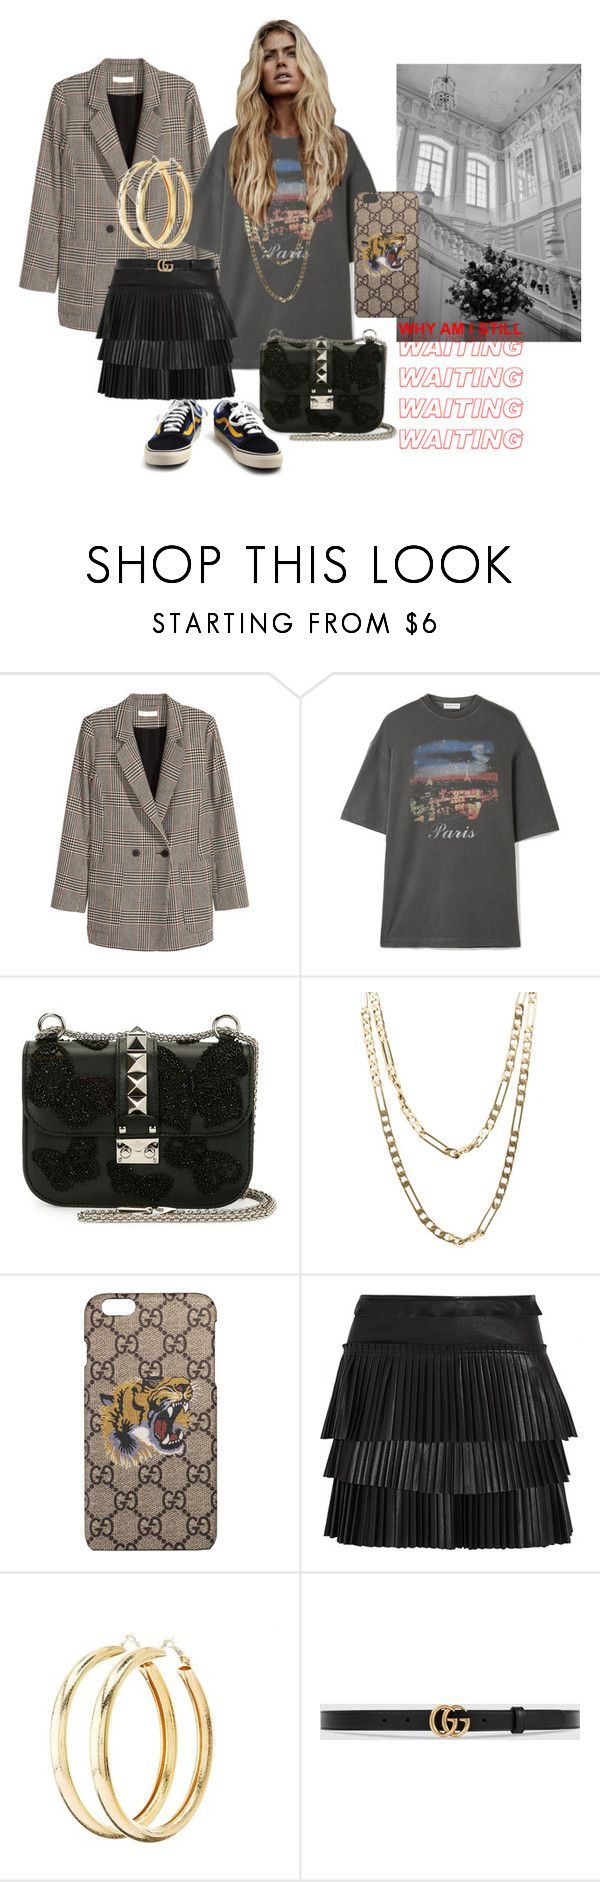 """Untitled #243"" by fashiondisguise on Polyvore featuring Jakke, Balenciaga, Valentino, Cartier, Gucci, Isabel Marant, Charlotte Russe and Vans"